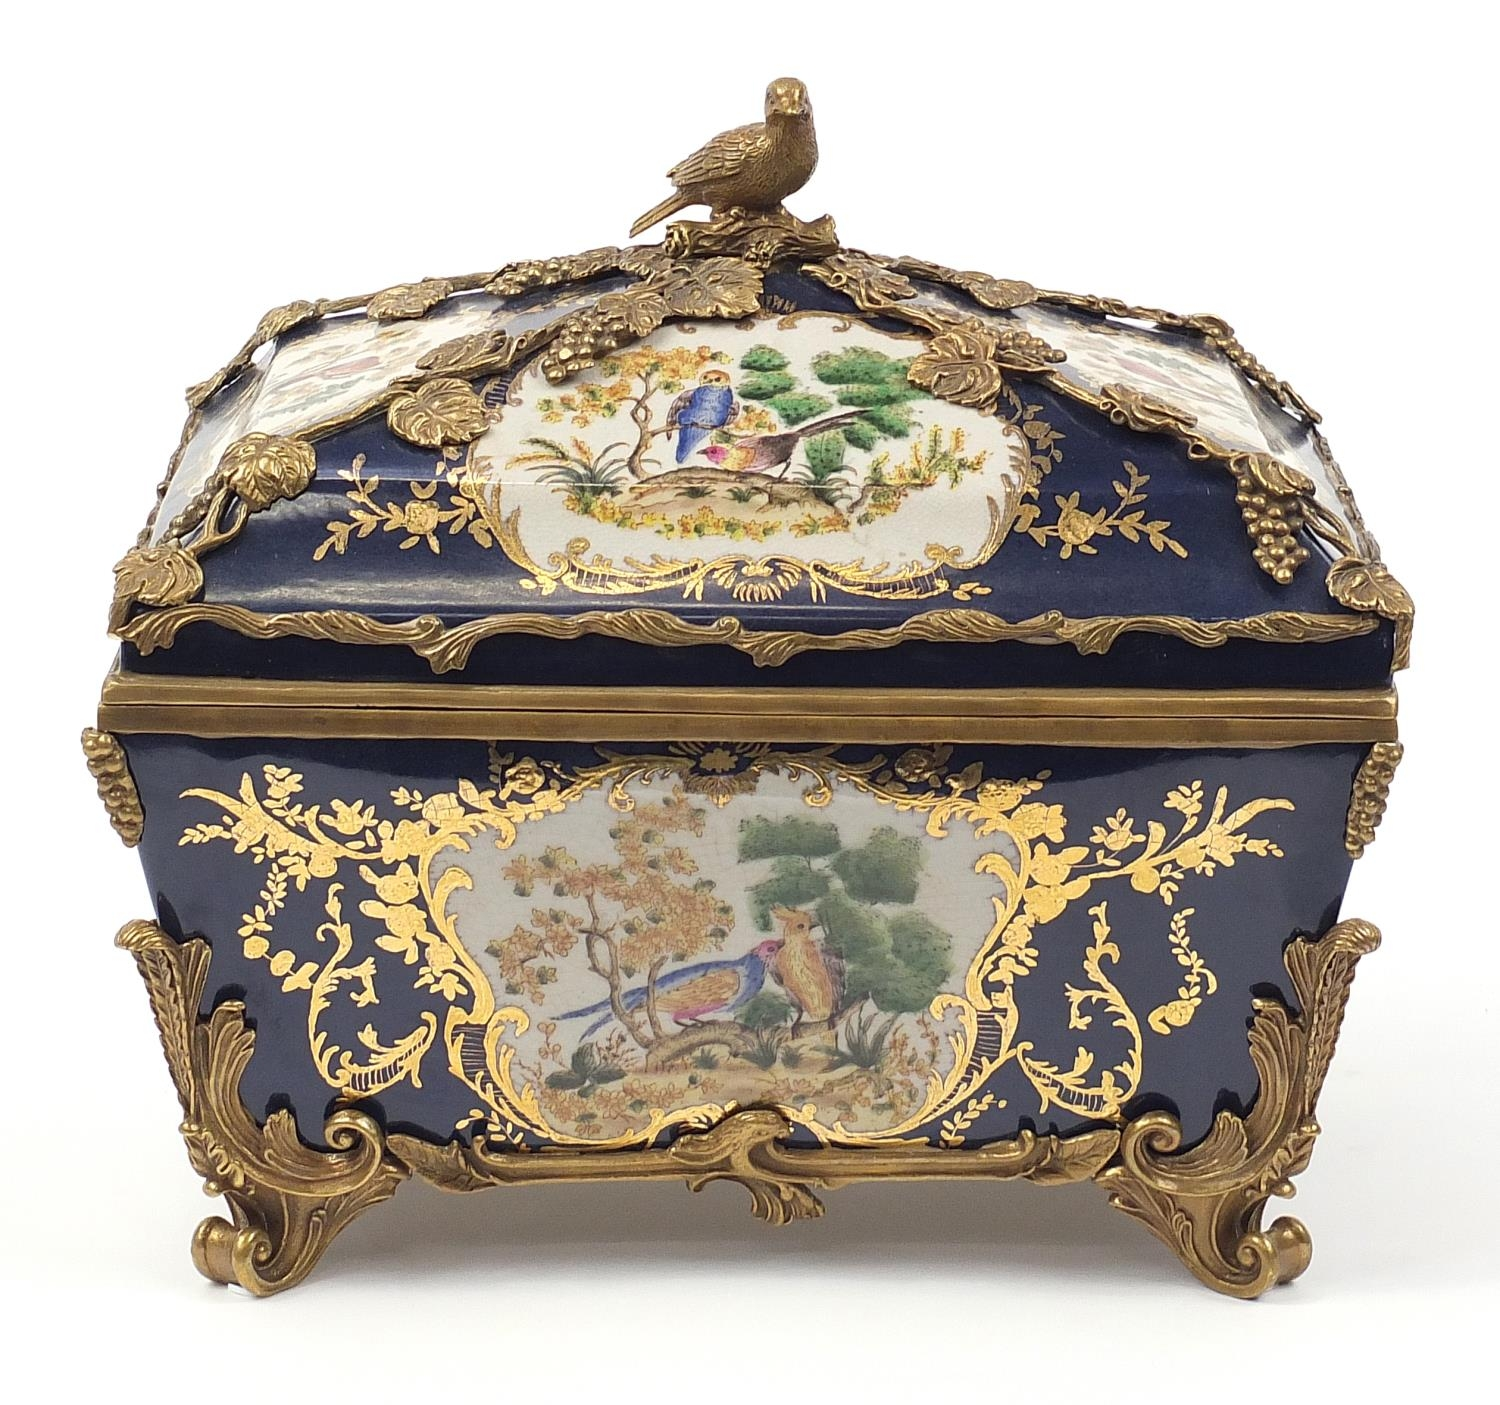 Continental bronze mounted porcelain table casket decorated with birds, leaves and berries, 35cm H x - Image 2 of 10